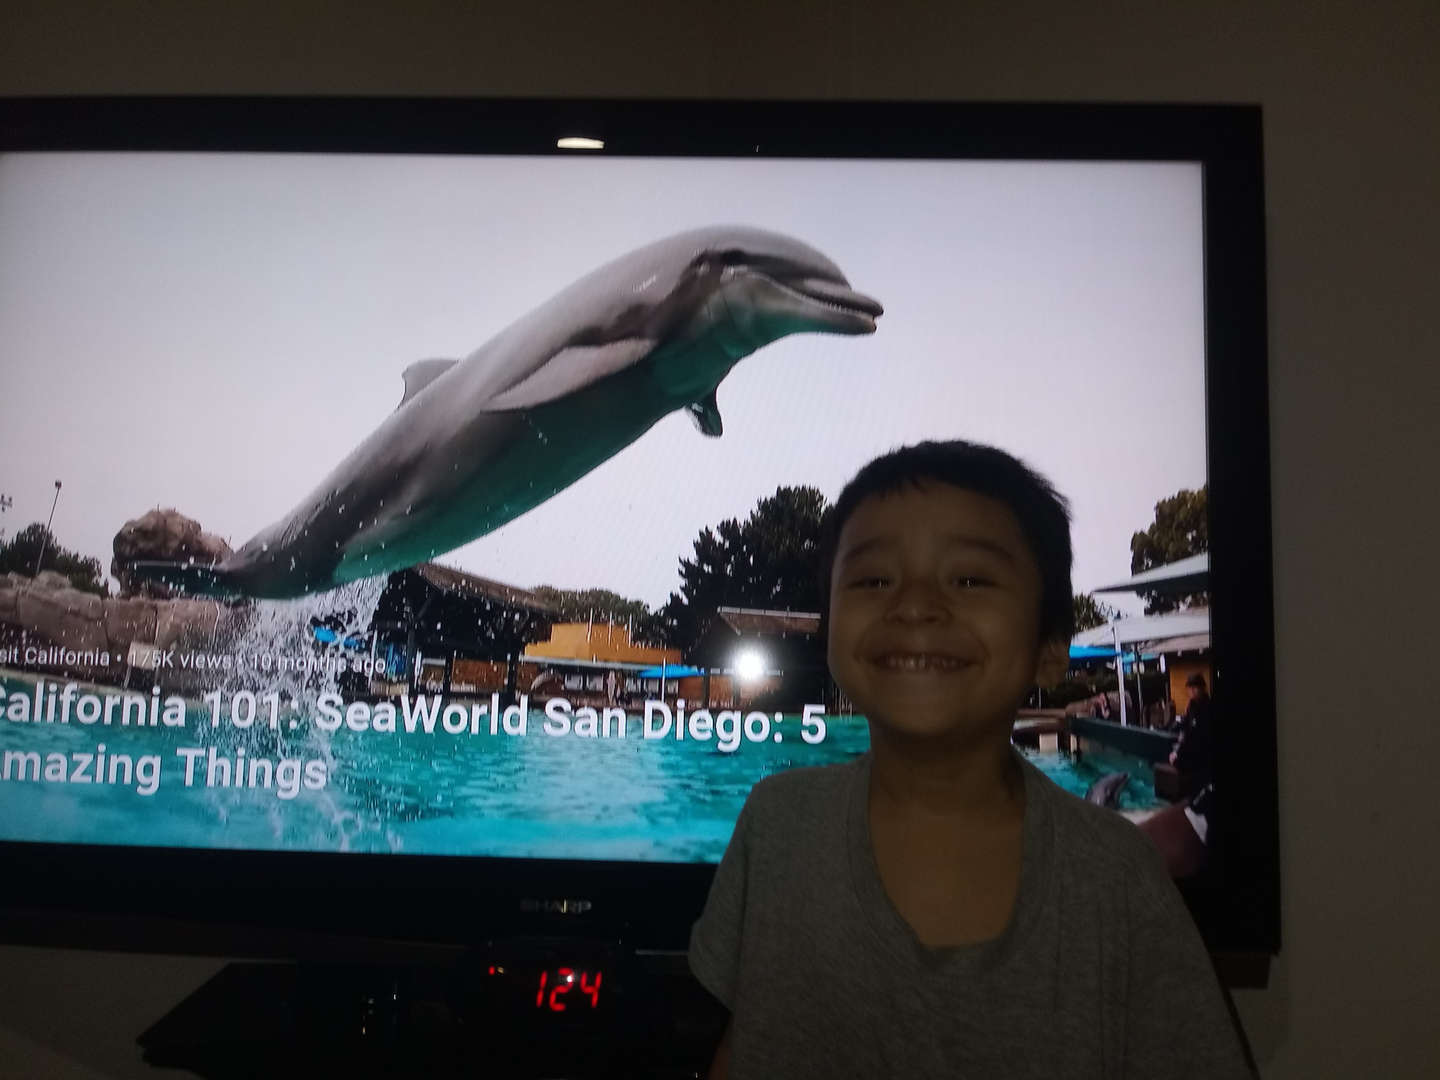 child standing in front of dolphin on screen